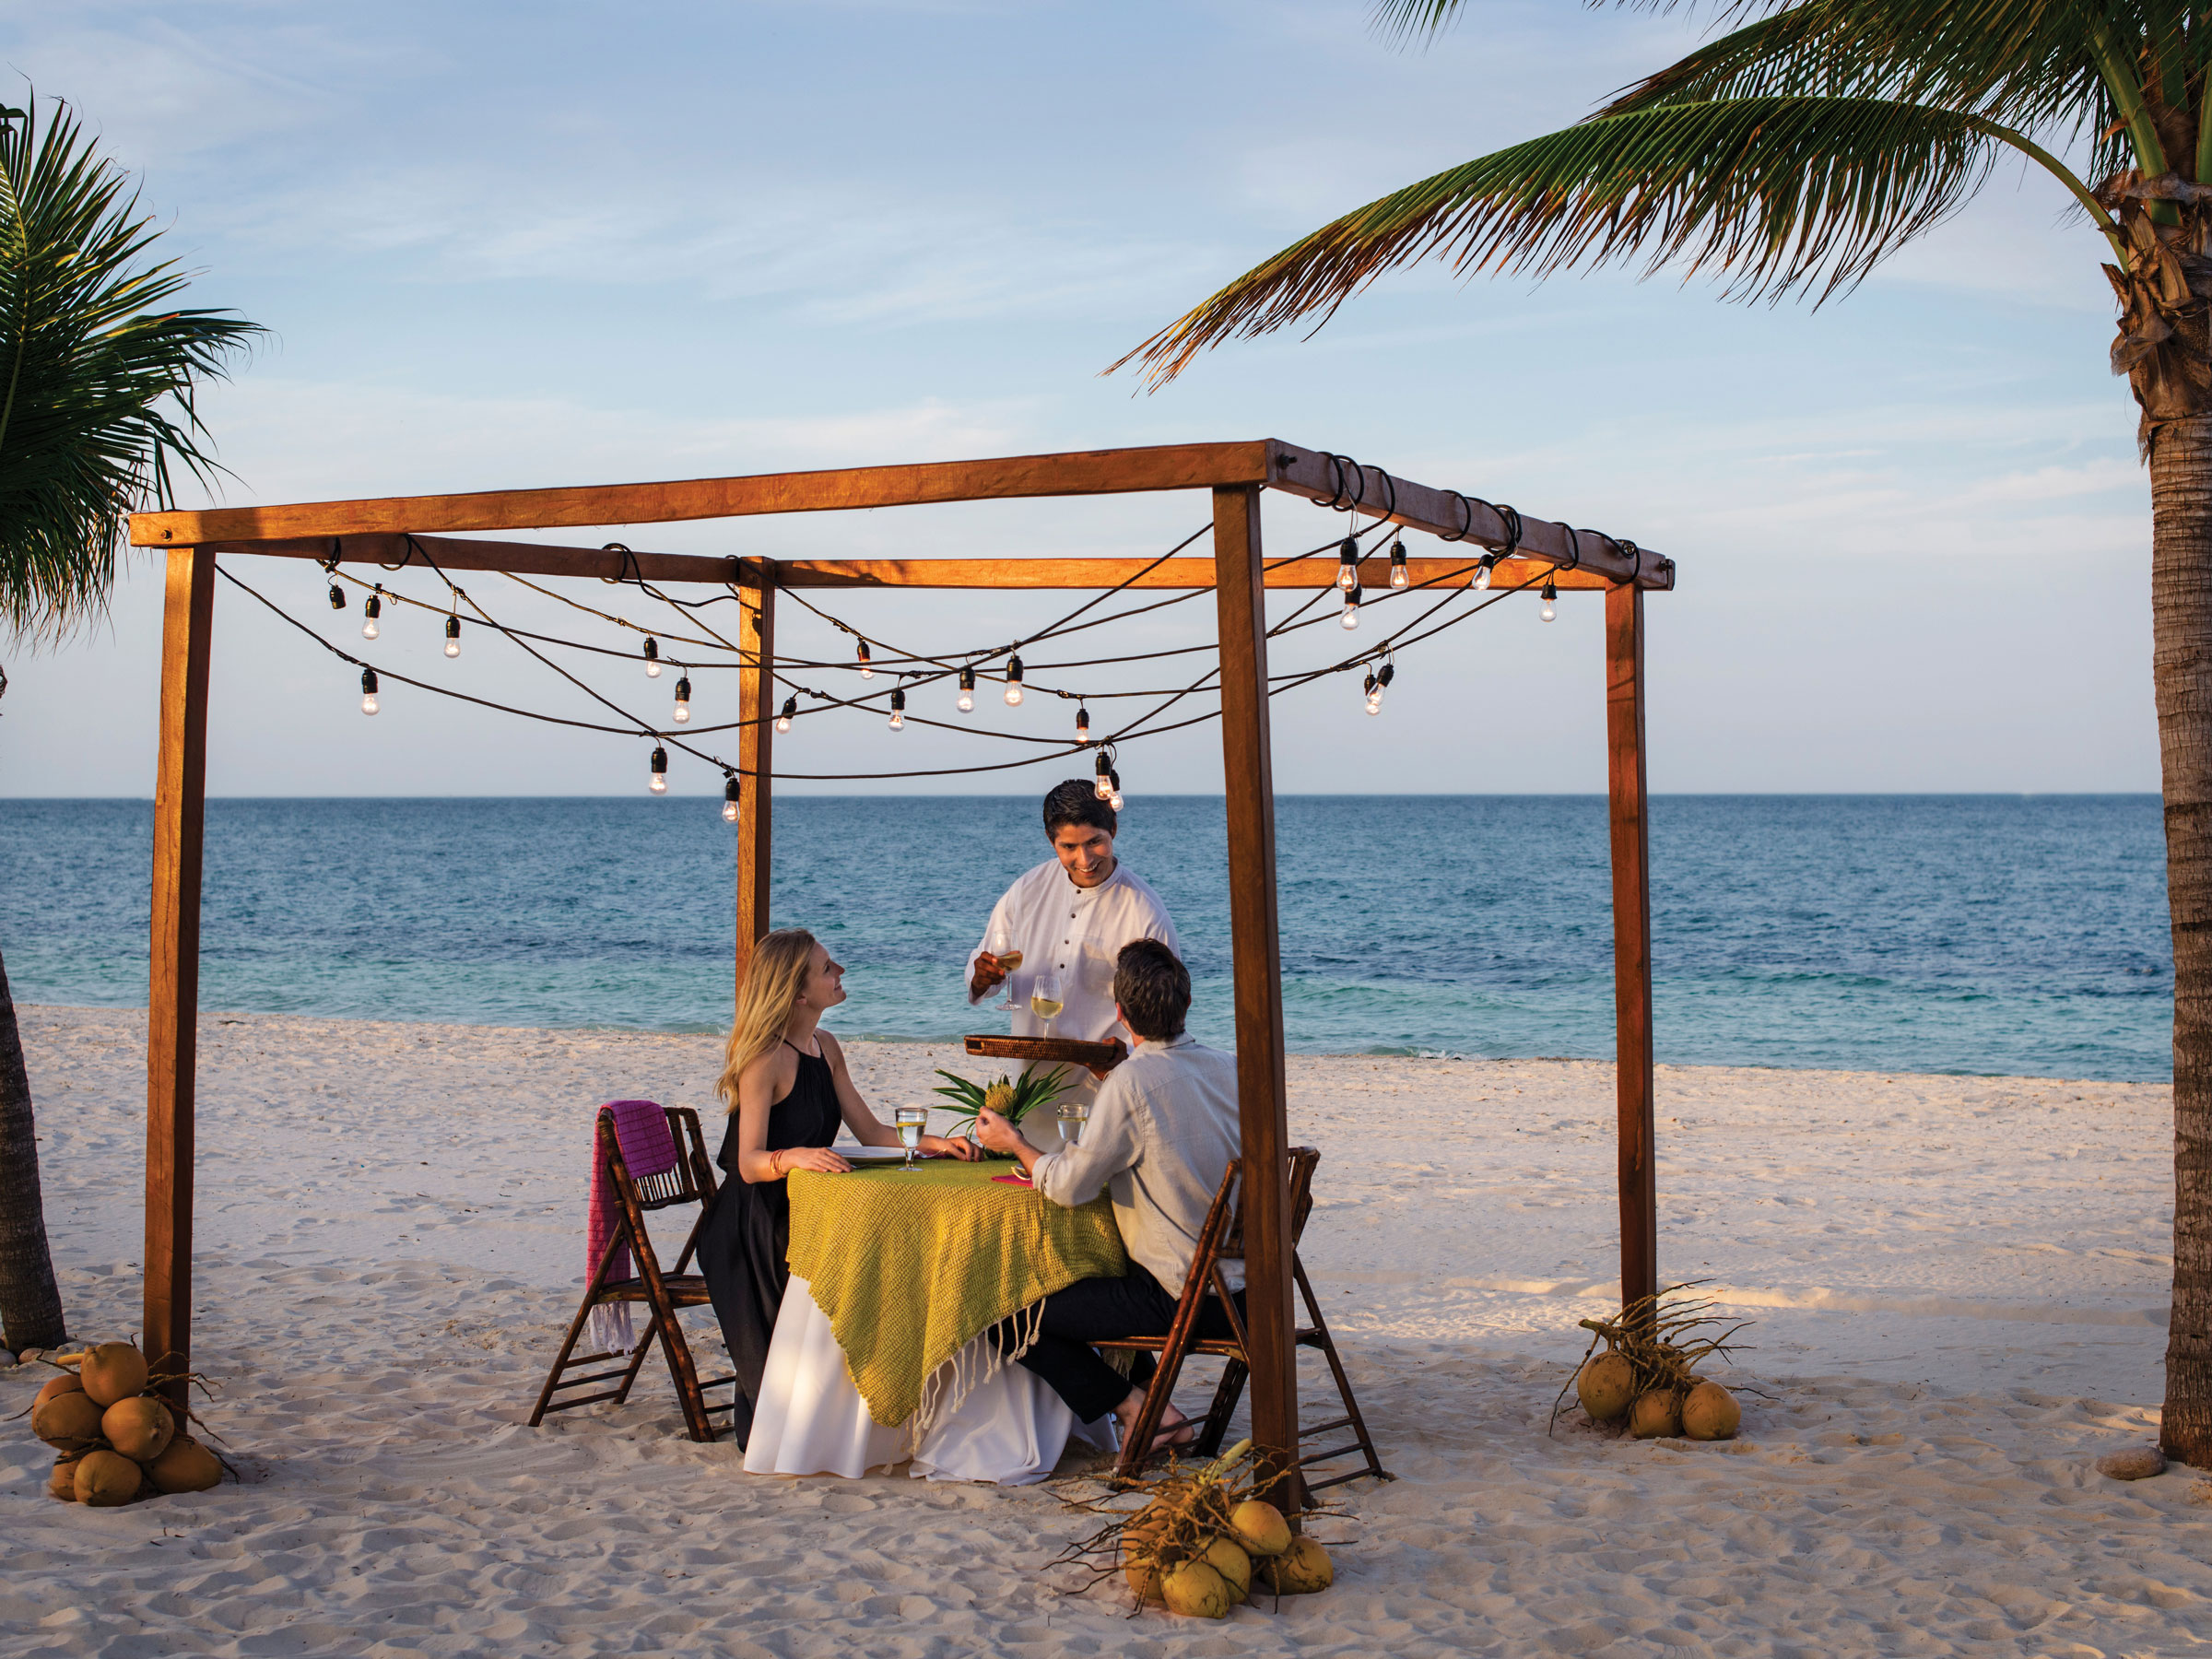 Best All Inclusive Honeymoon Resorts with Romantic Dinner on the Beach